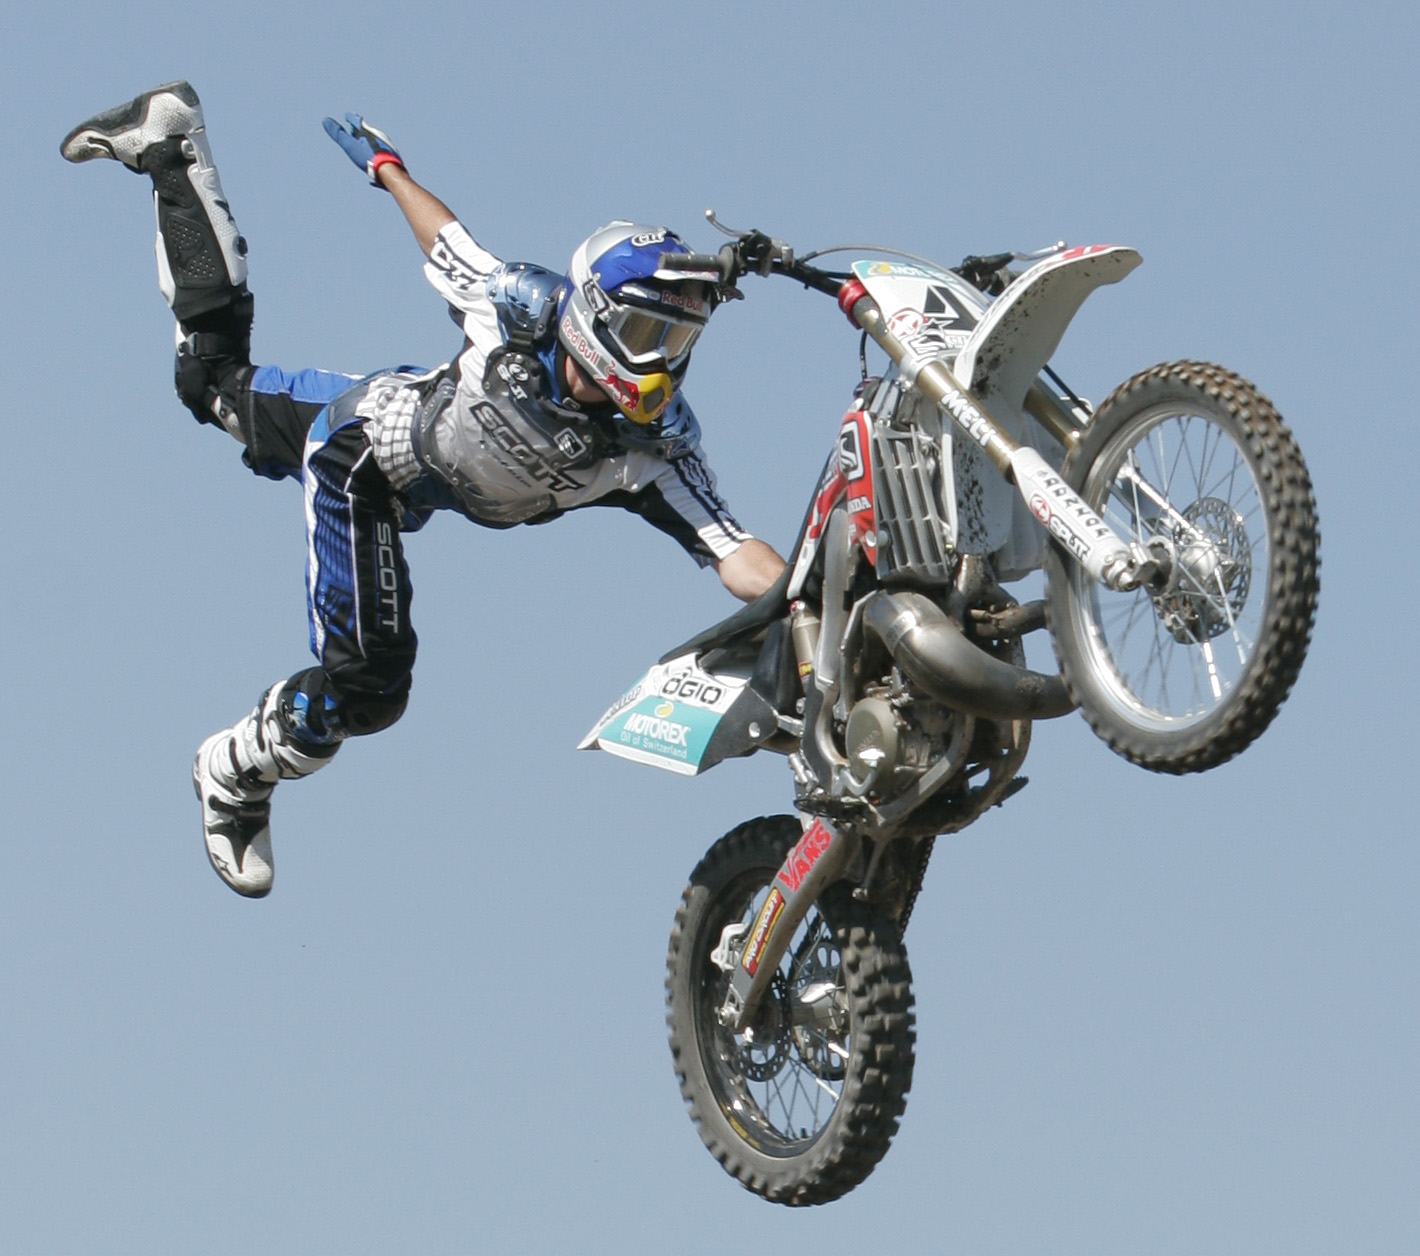 Extreme Sports: Extreme Sports Wallpapers